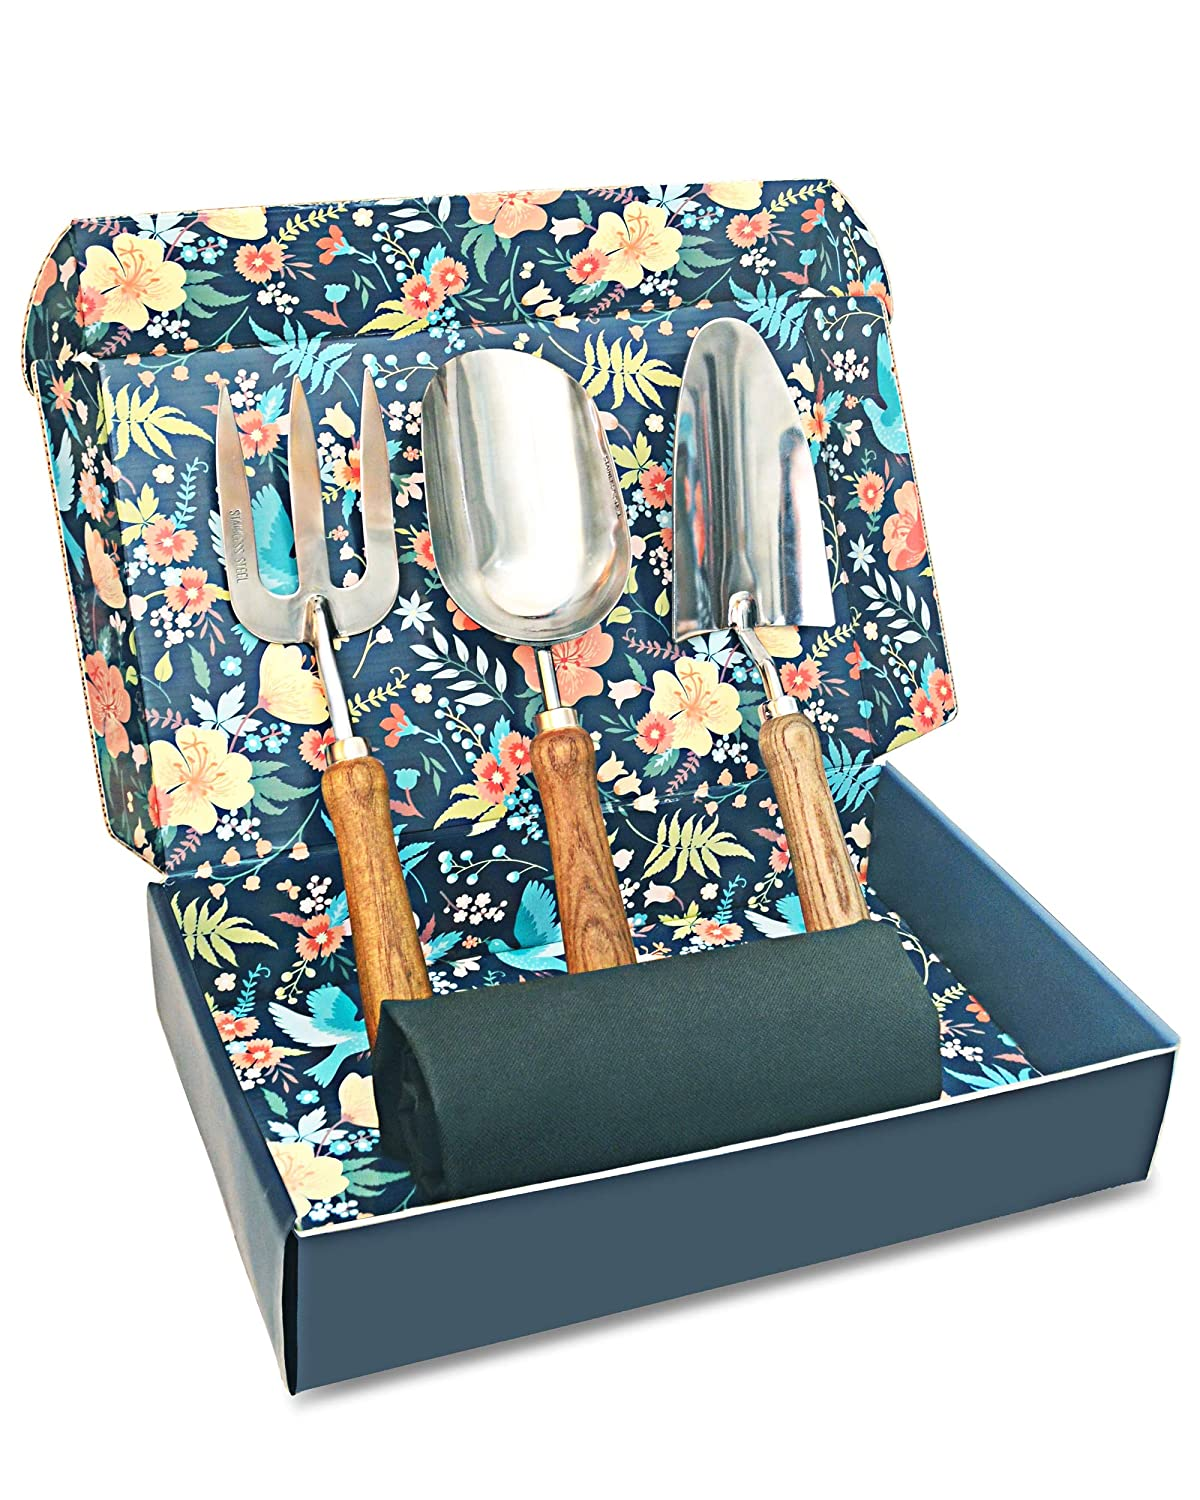 Sunphio Gardening Tools Set with Heavy Duty Garden Hand Trowel Spade Shovel and Fork Kit Forged Stainless Steel and Never Fall Off Wood Handle 1 Indoor Work Mat 1 Beautiful Gift Box for Women Men